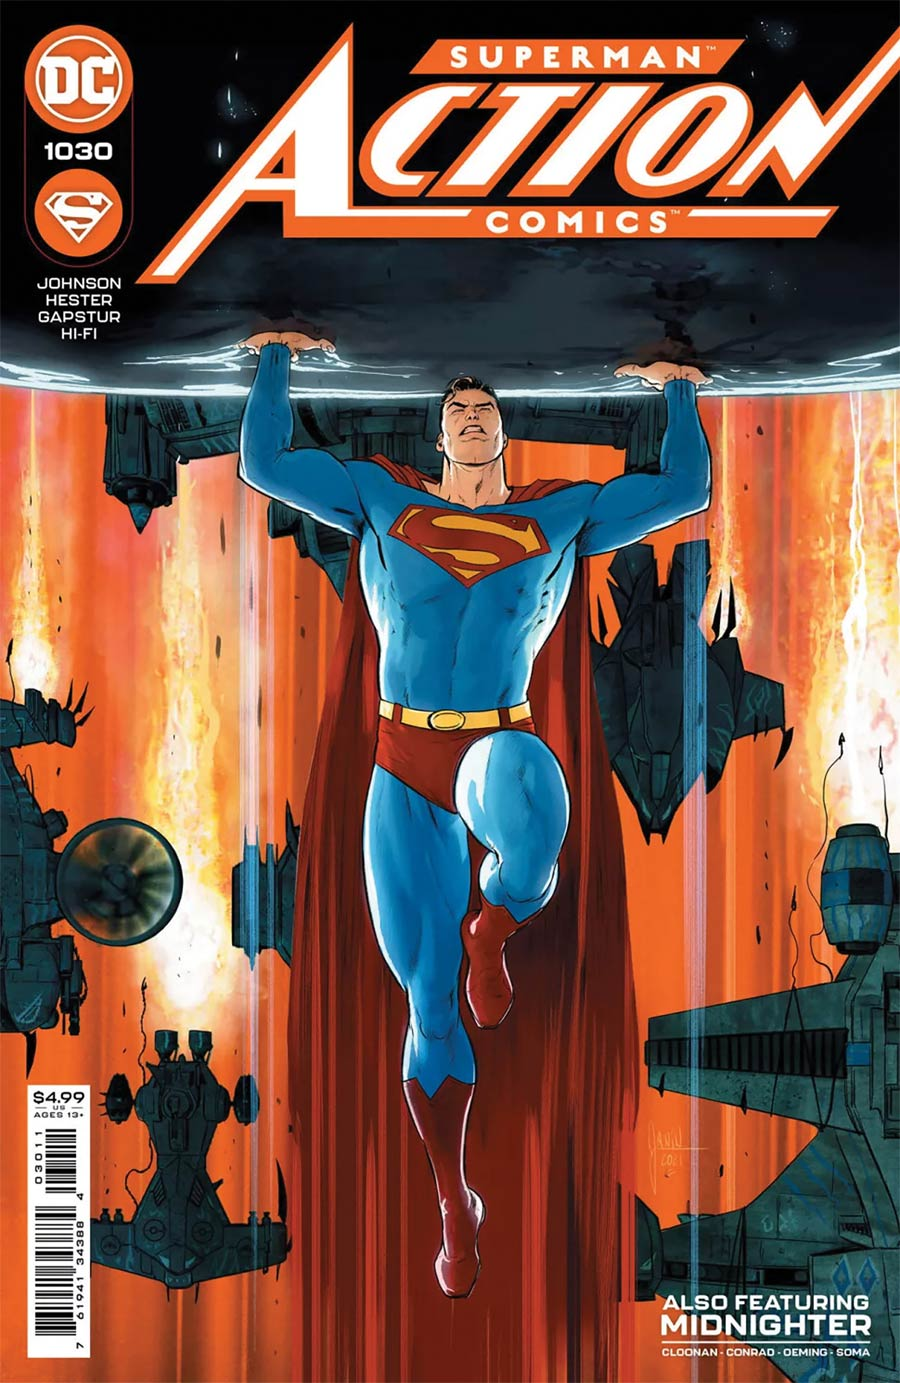 Action Comics Vol 2 #1030 Cover C DF Signed By Phillip Kennedy Johnson